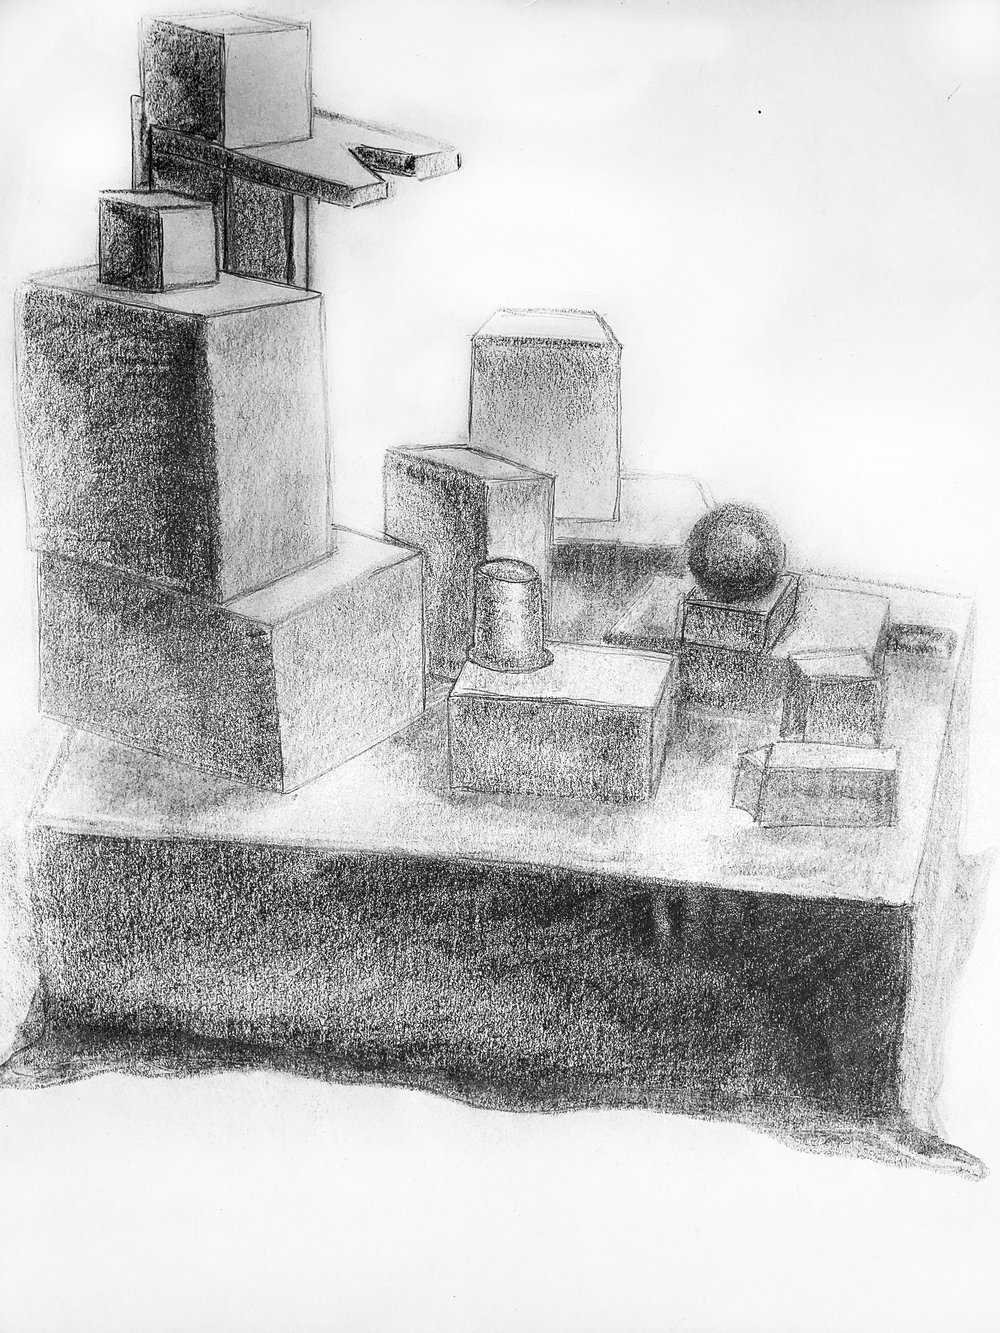 Sizing/Shading Study - Beginning Drawing